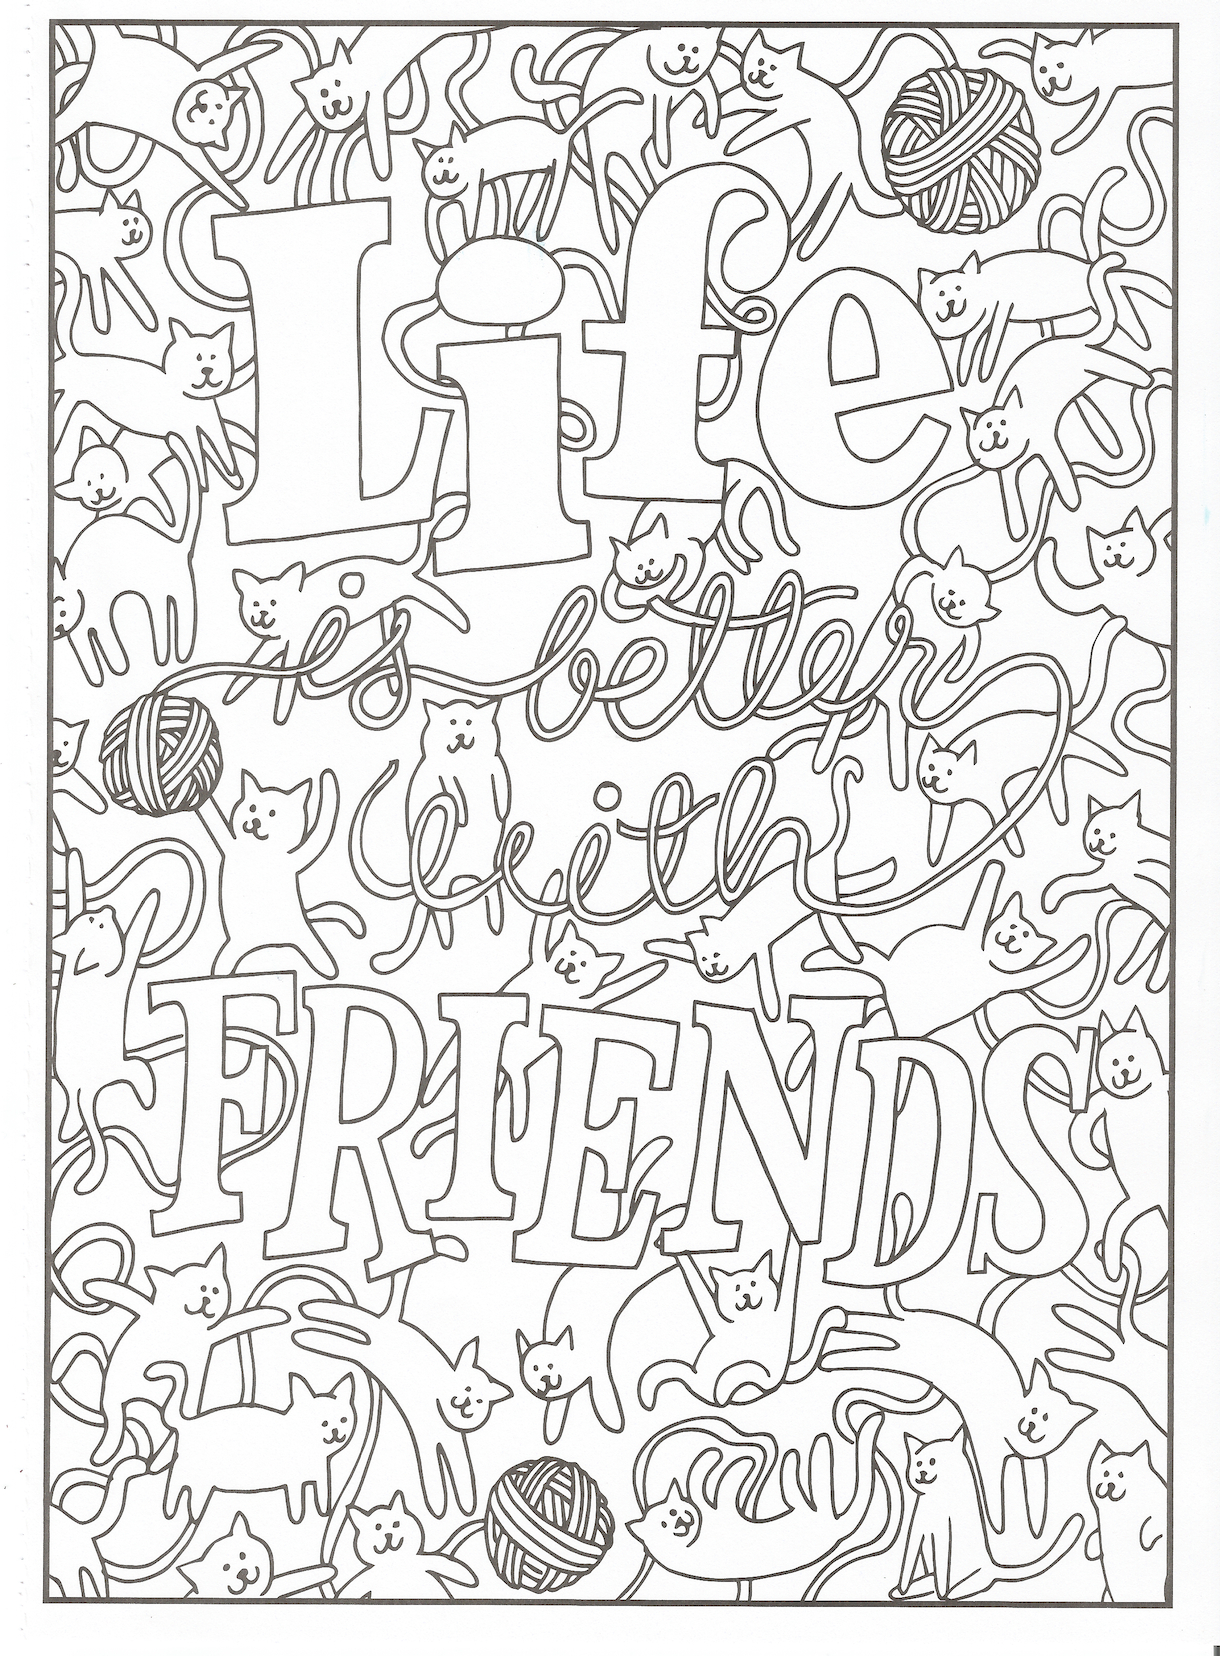 mindware coloring pages free Download-Timeless Creations Creative Quotes Coloring Page Life is Better with Friends 7-s